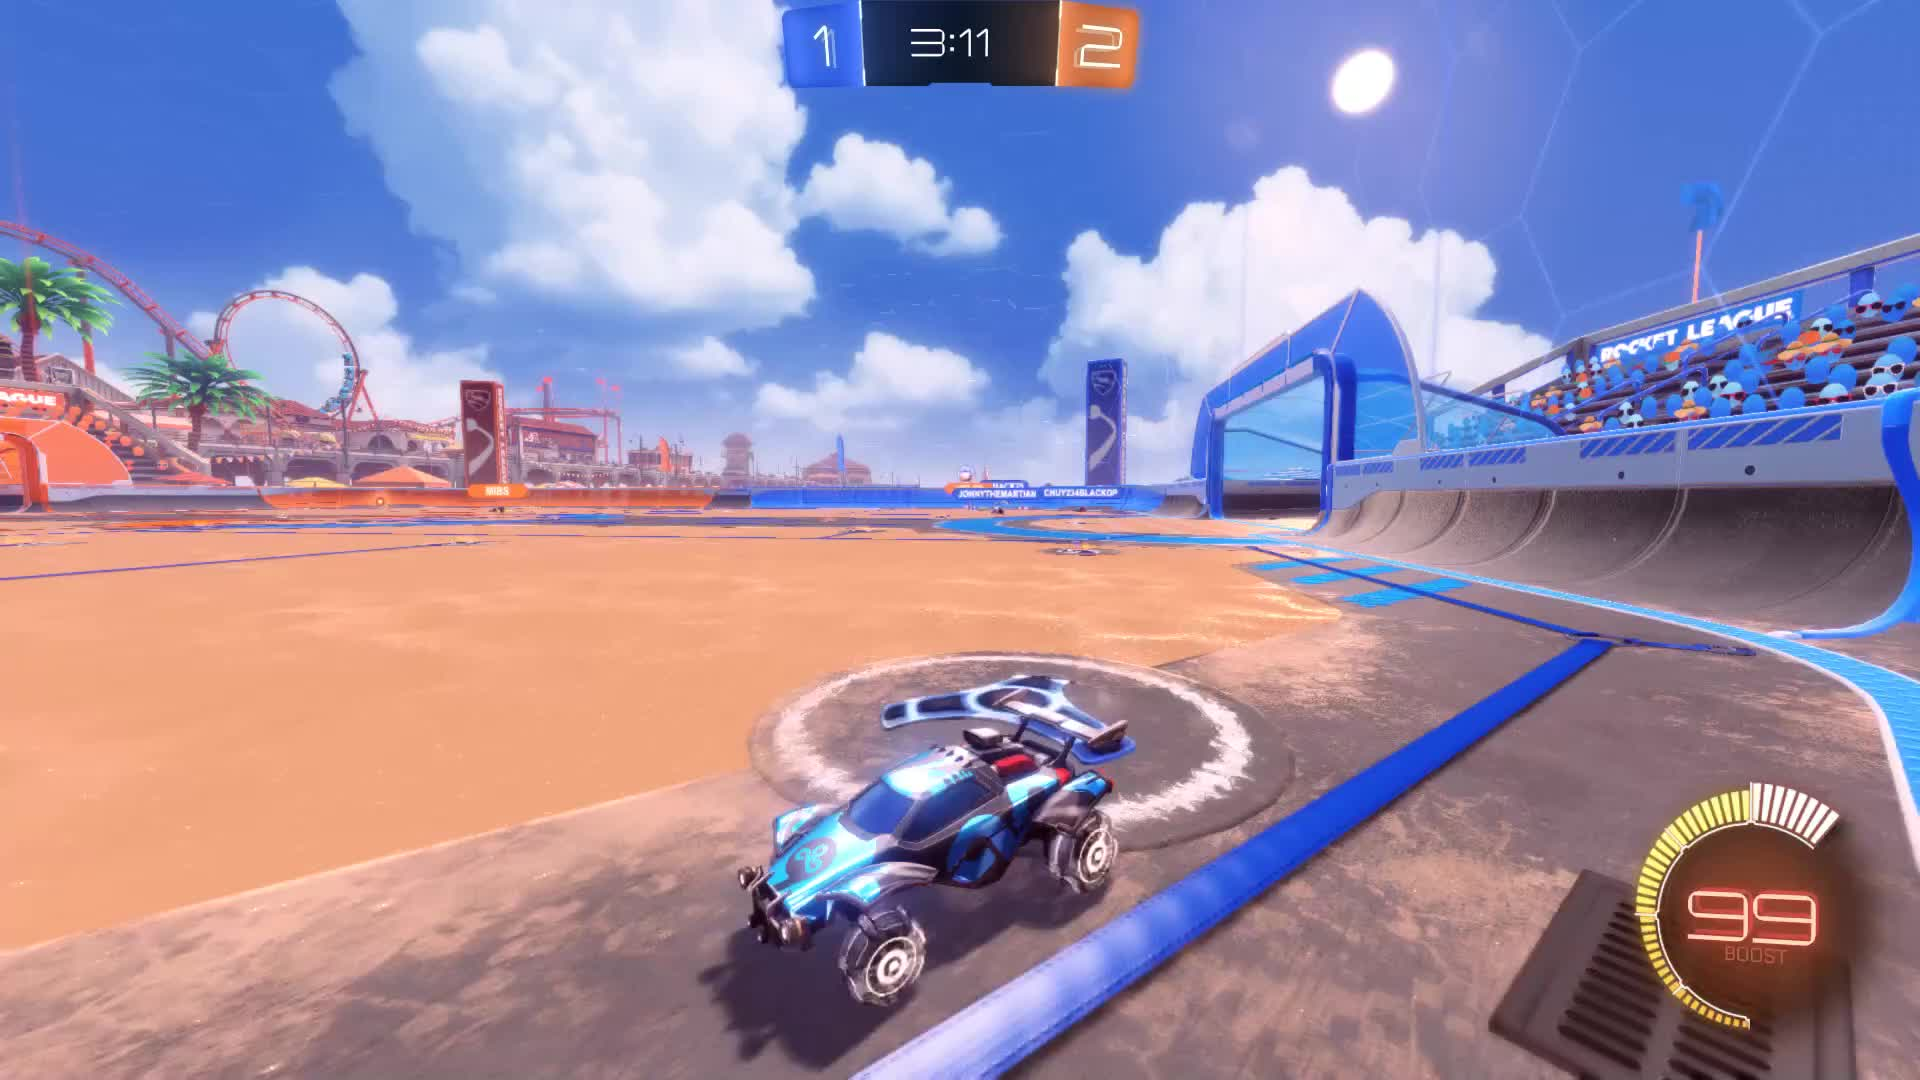 Diseam, Gif Your Game, GifYourGame, Goal, Rocket League, RocketLeague, Goal 4: Diseam GIFs